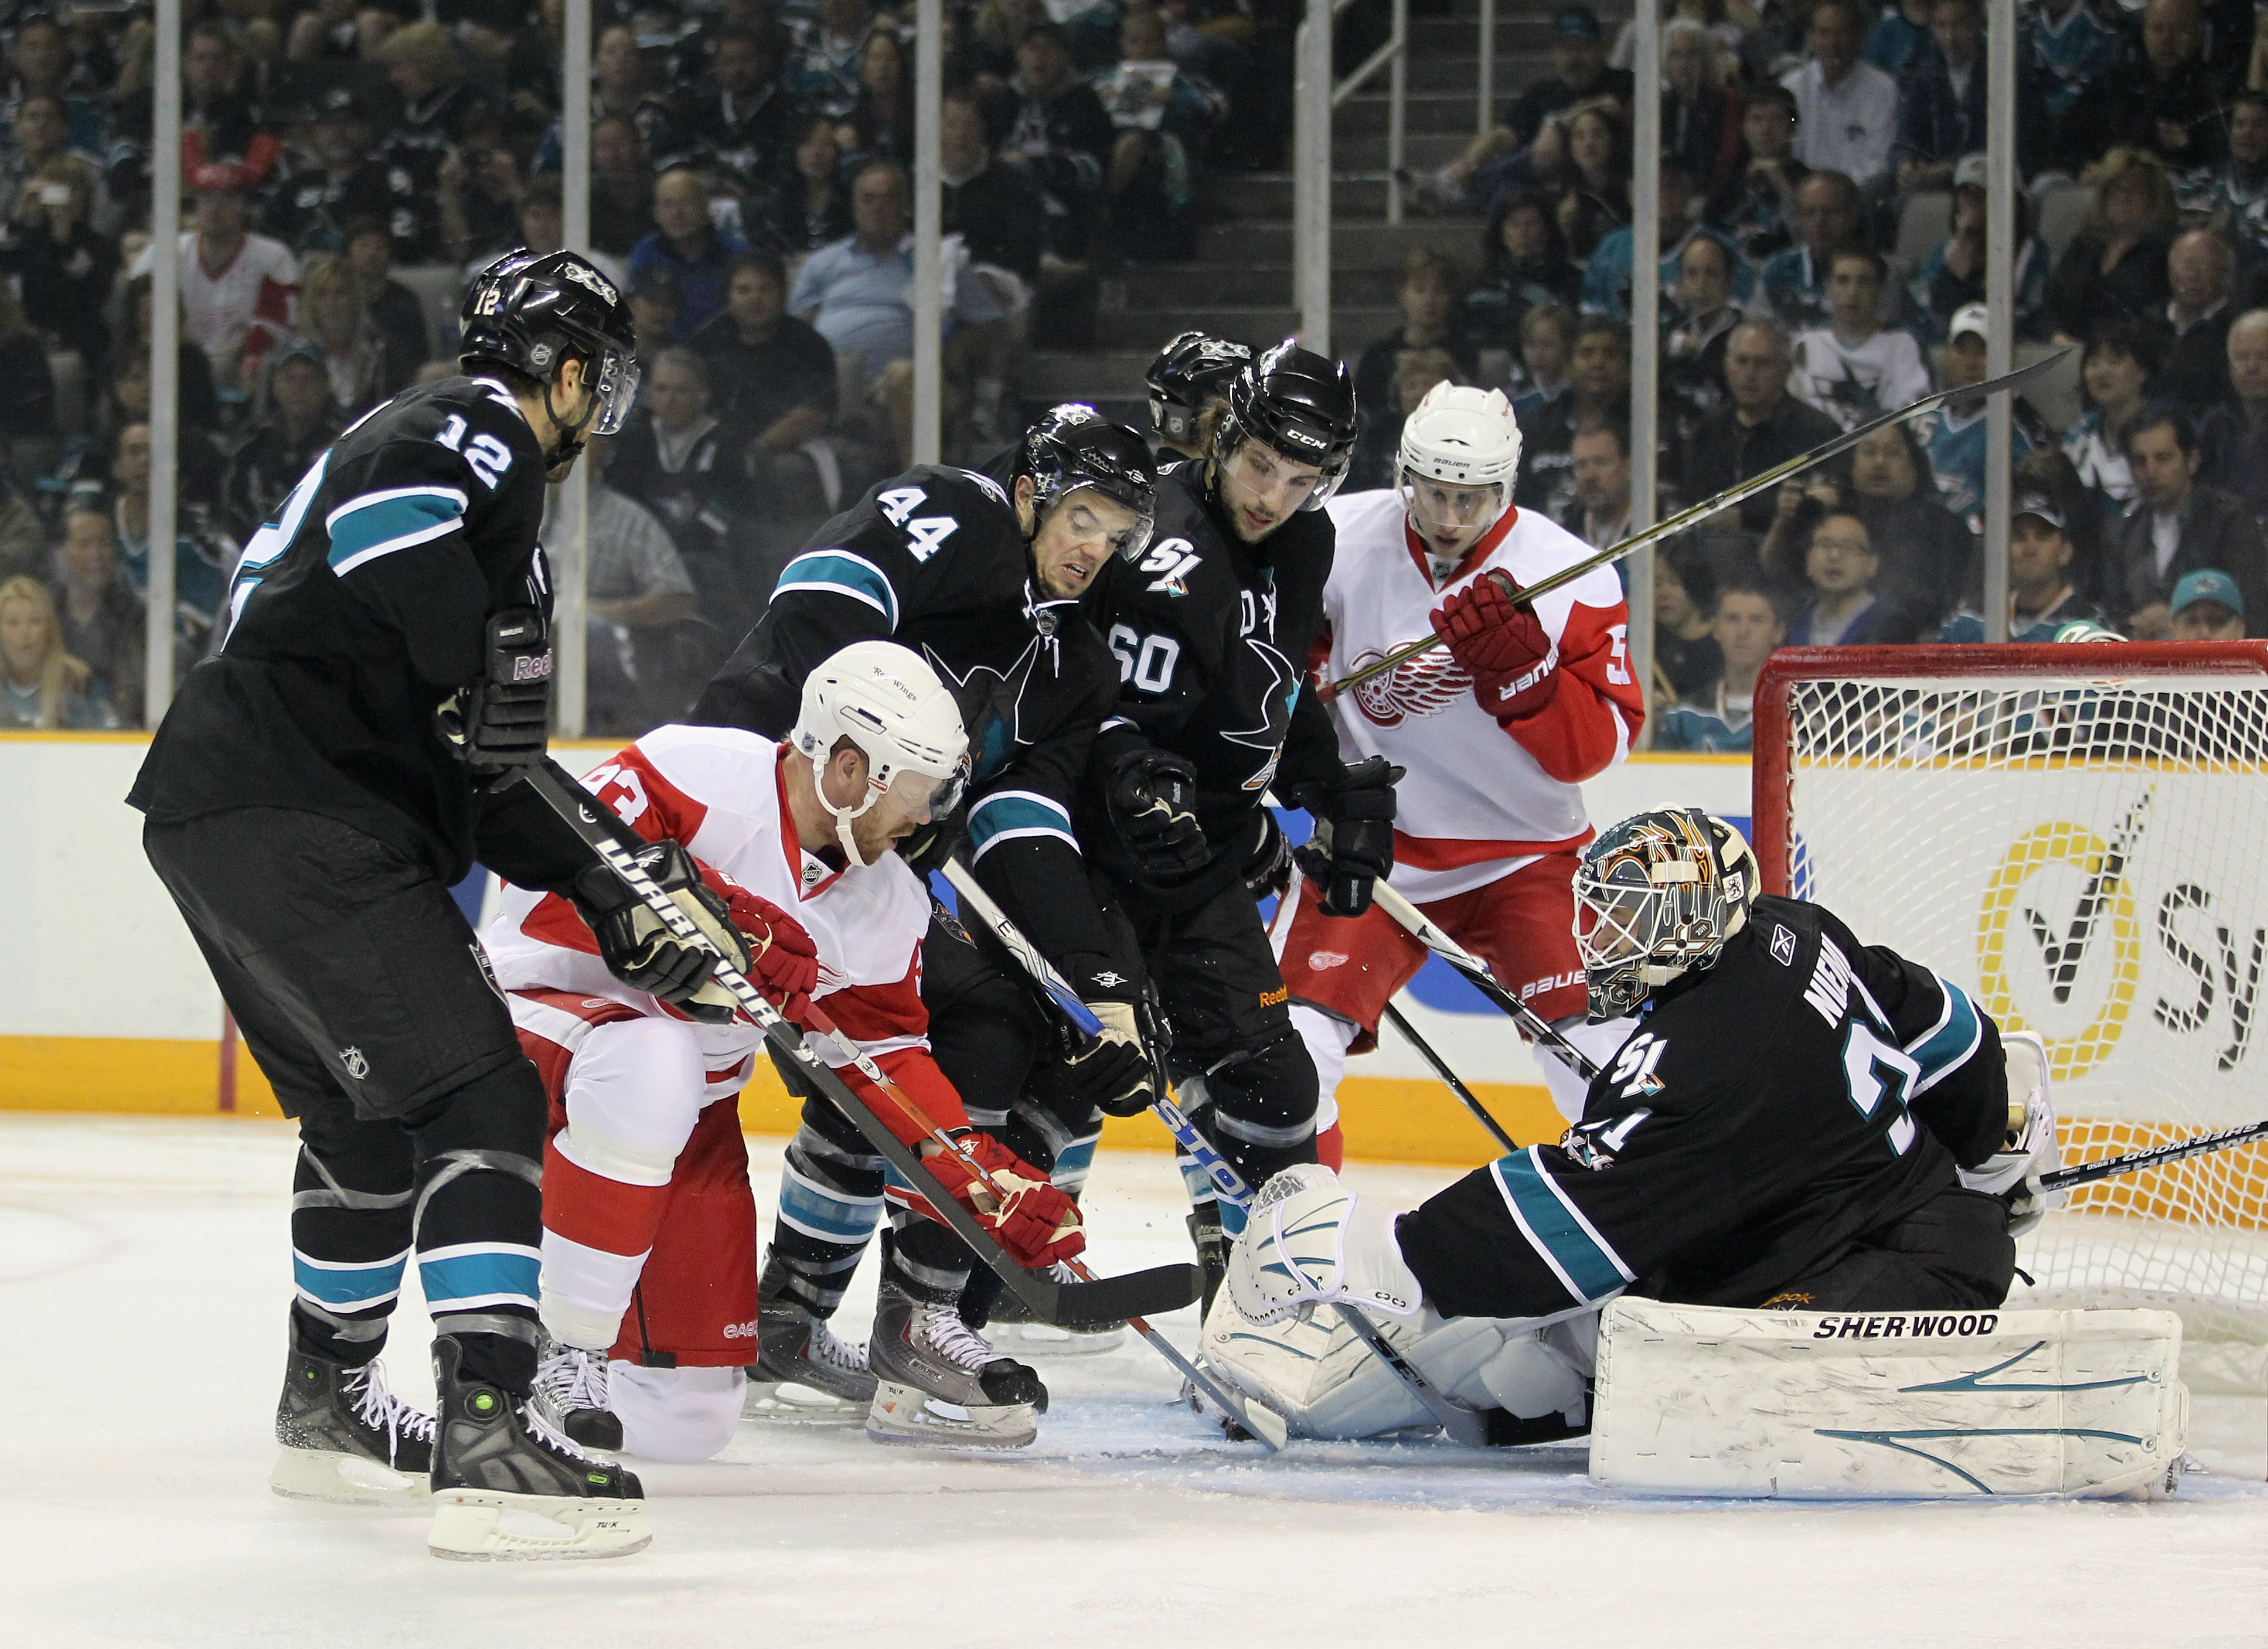 SAN JOSE, CA - MAY 01:  Antti Niemi #31 of the San Jose Sharks and the San Jose defense stop Johan Franzen #93 of the Detroit Red Wings from scoring in Game Two of the Western Conference Semifinals during the 2011 NHL Stanley Cup Playoffs at HP Pavilion o